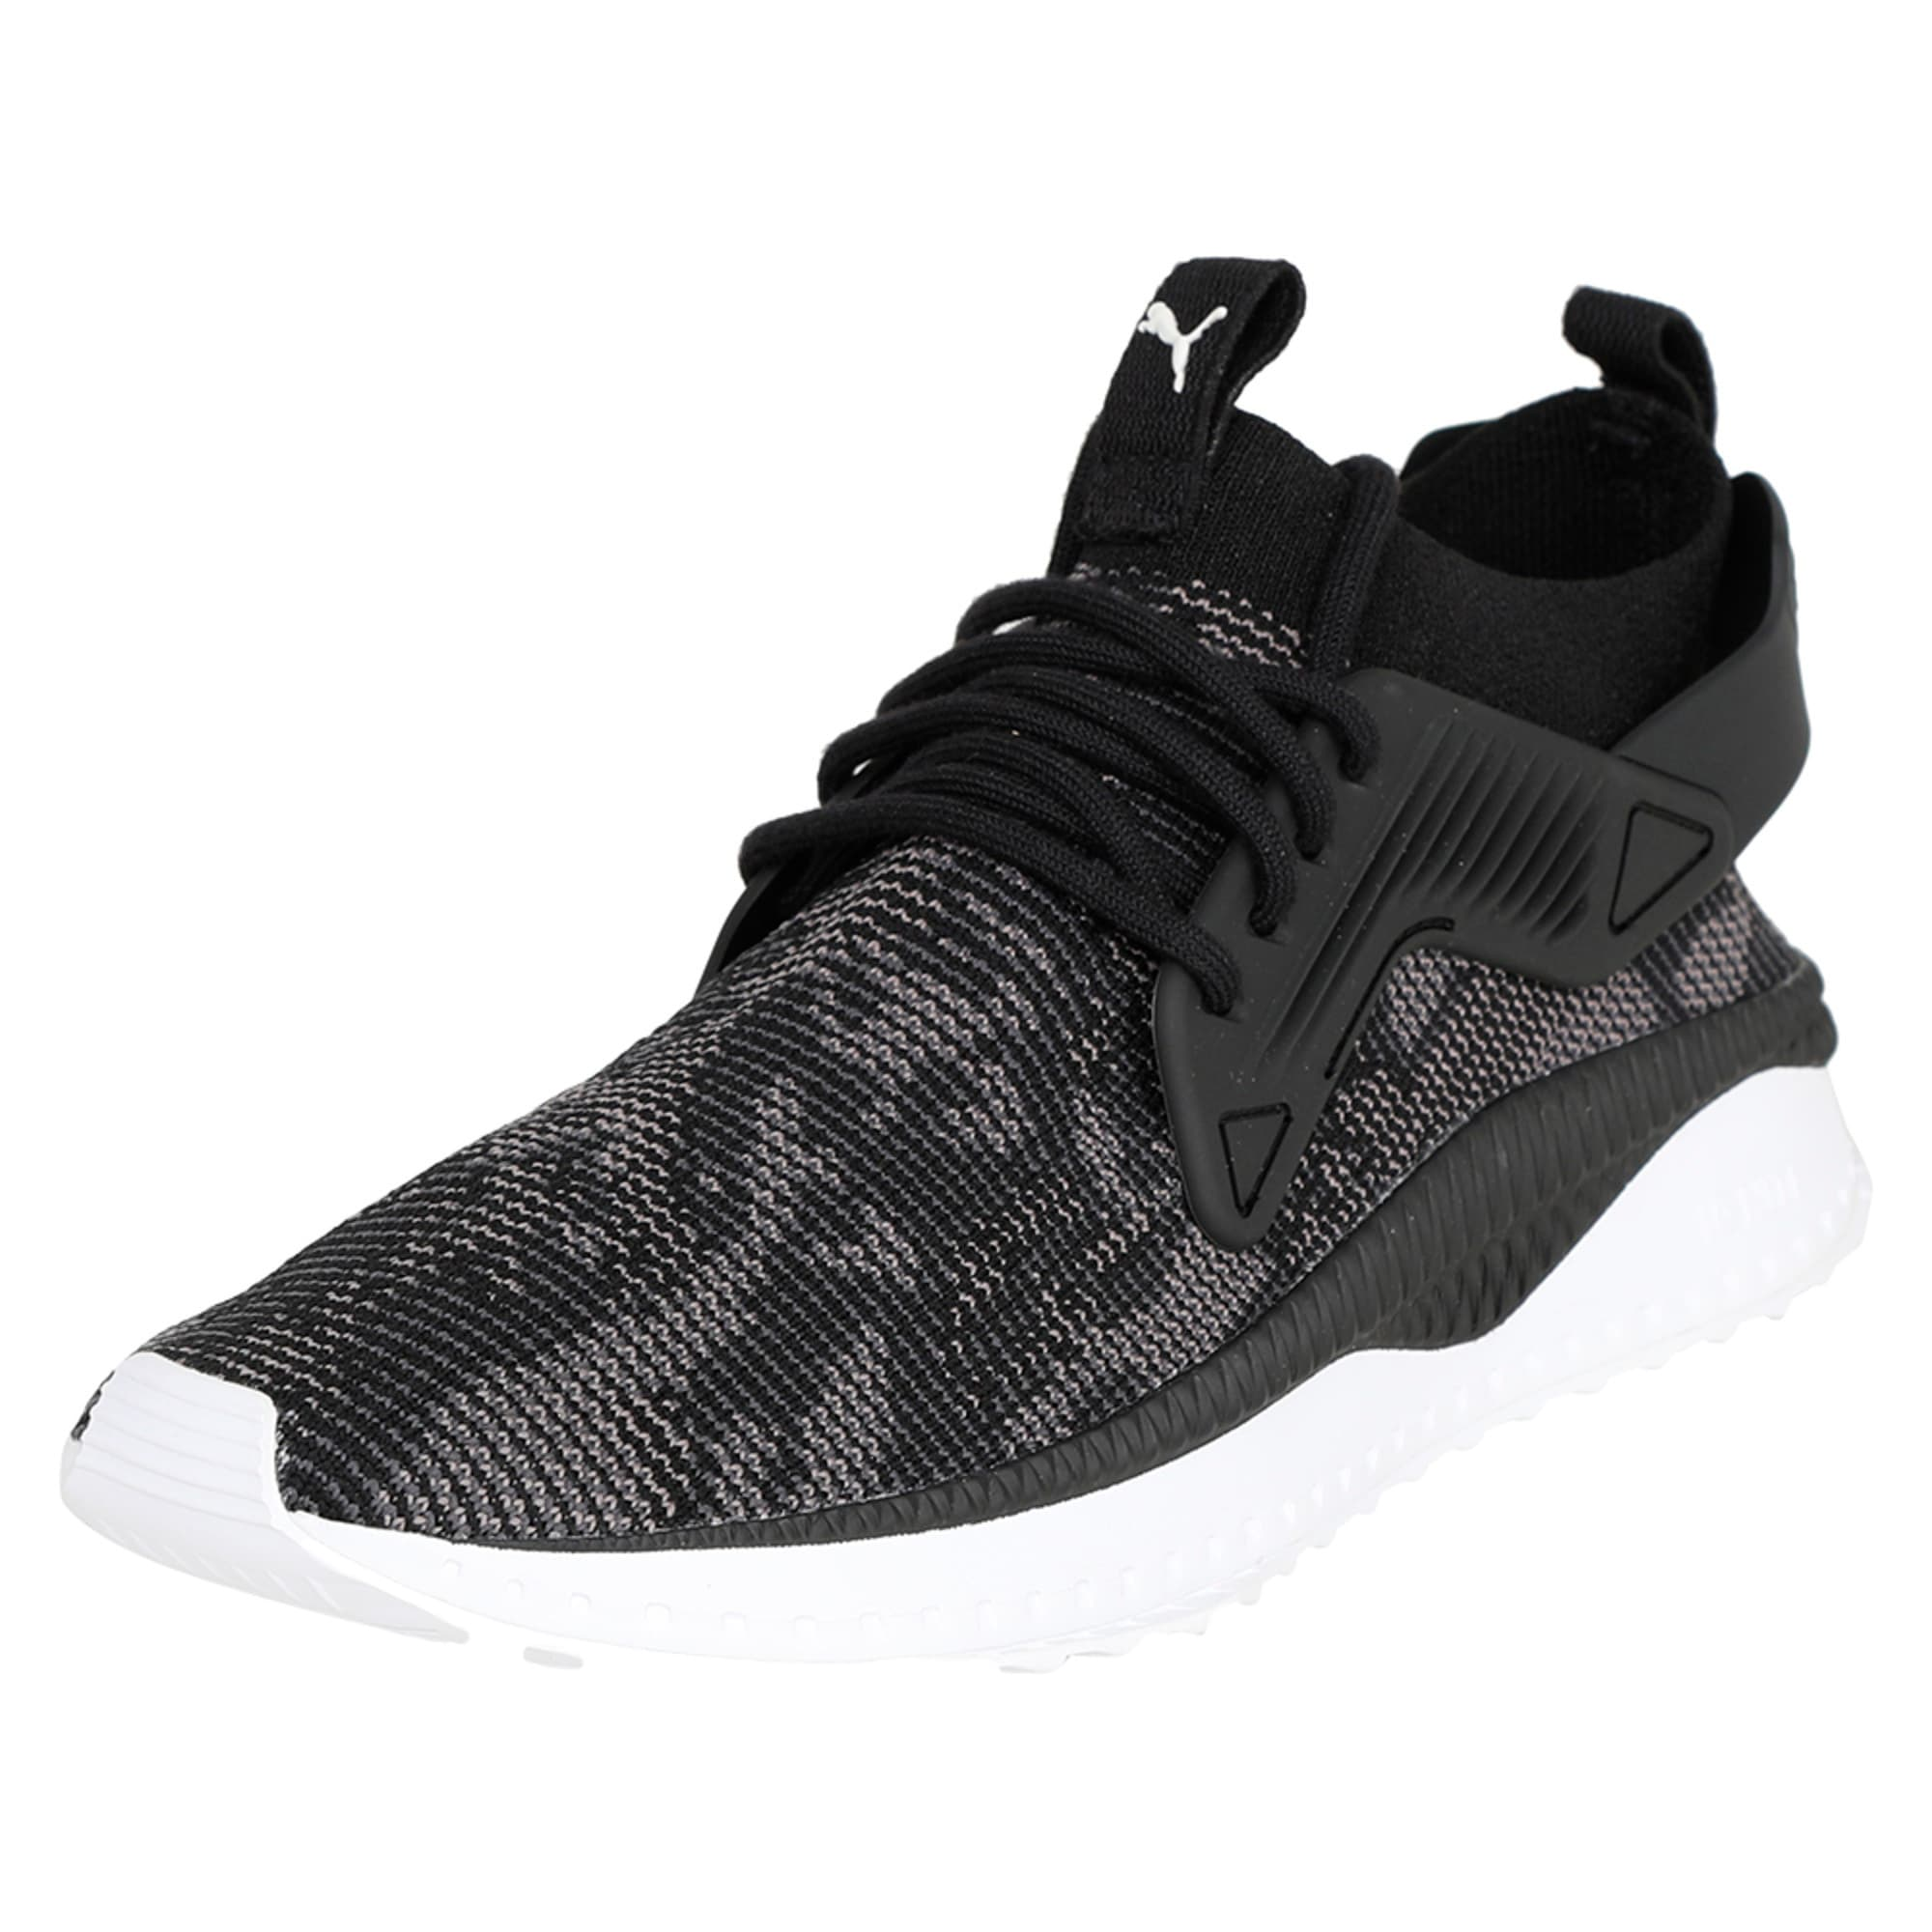 Thumbnail 1 of TSUGI Cage evoKNIT WF Trainers, Puma Black-Puma White-, medium-IND